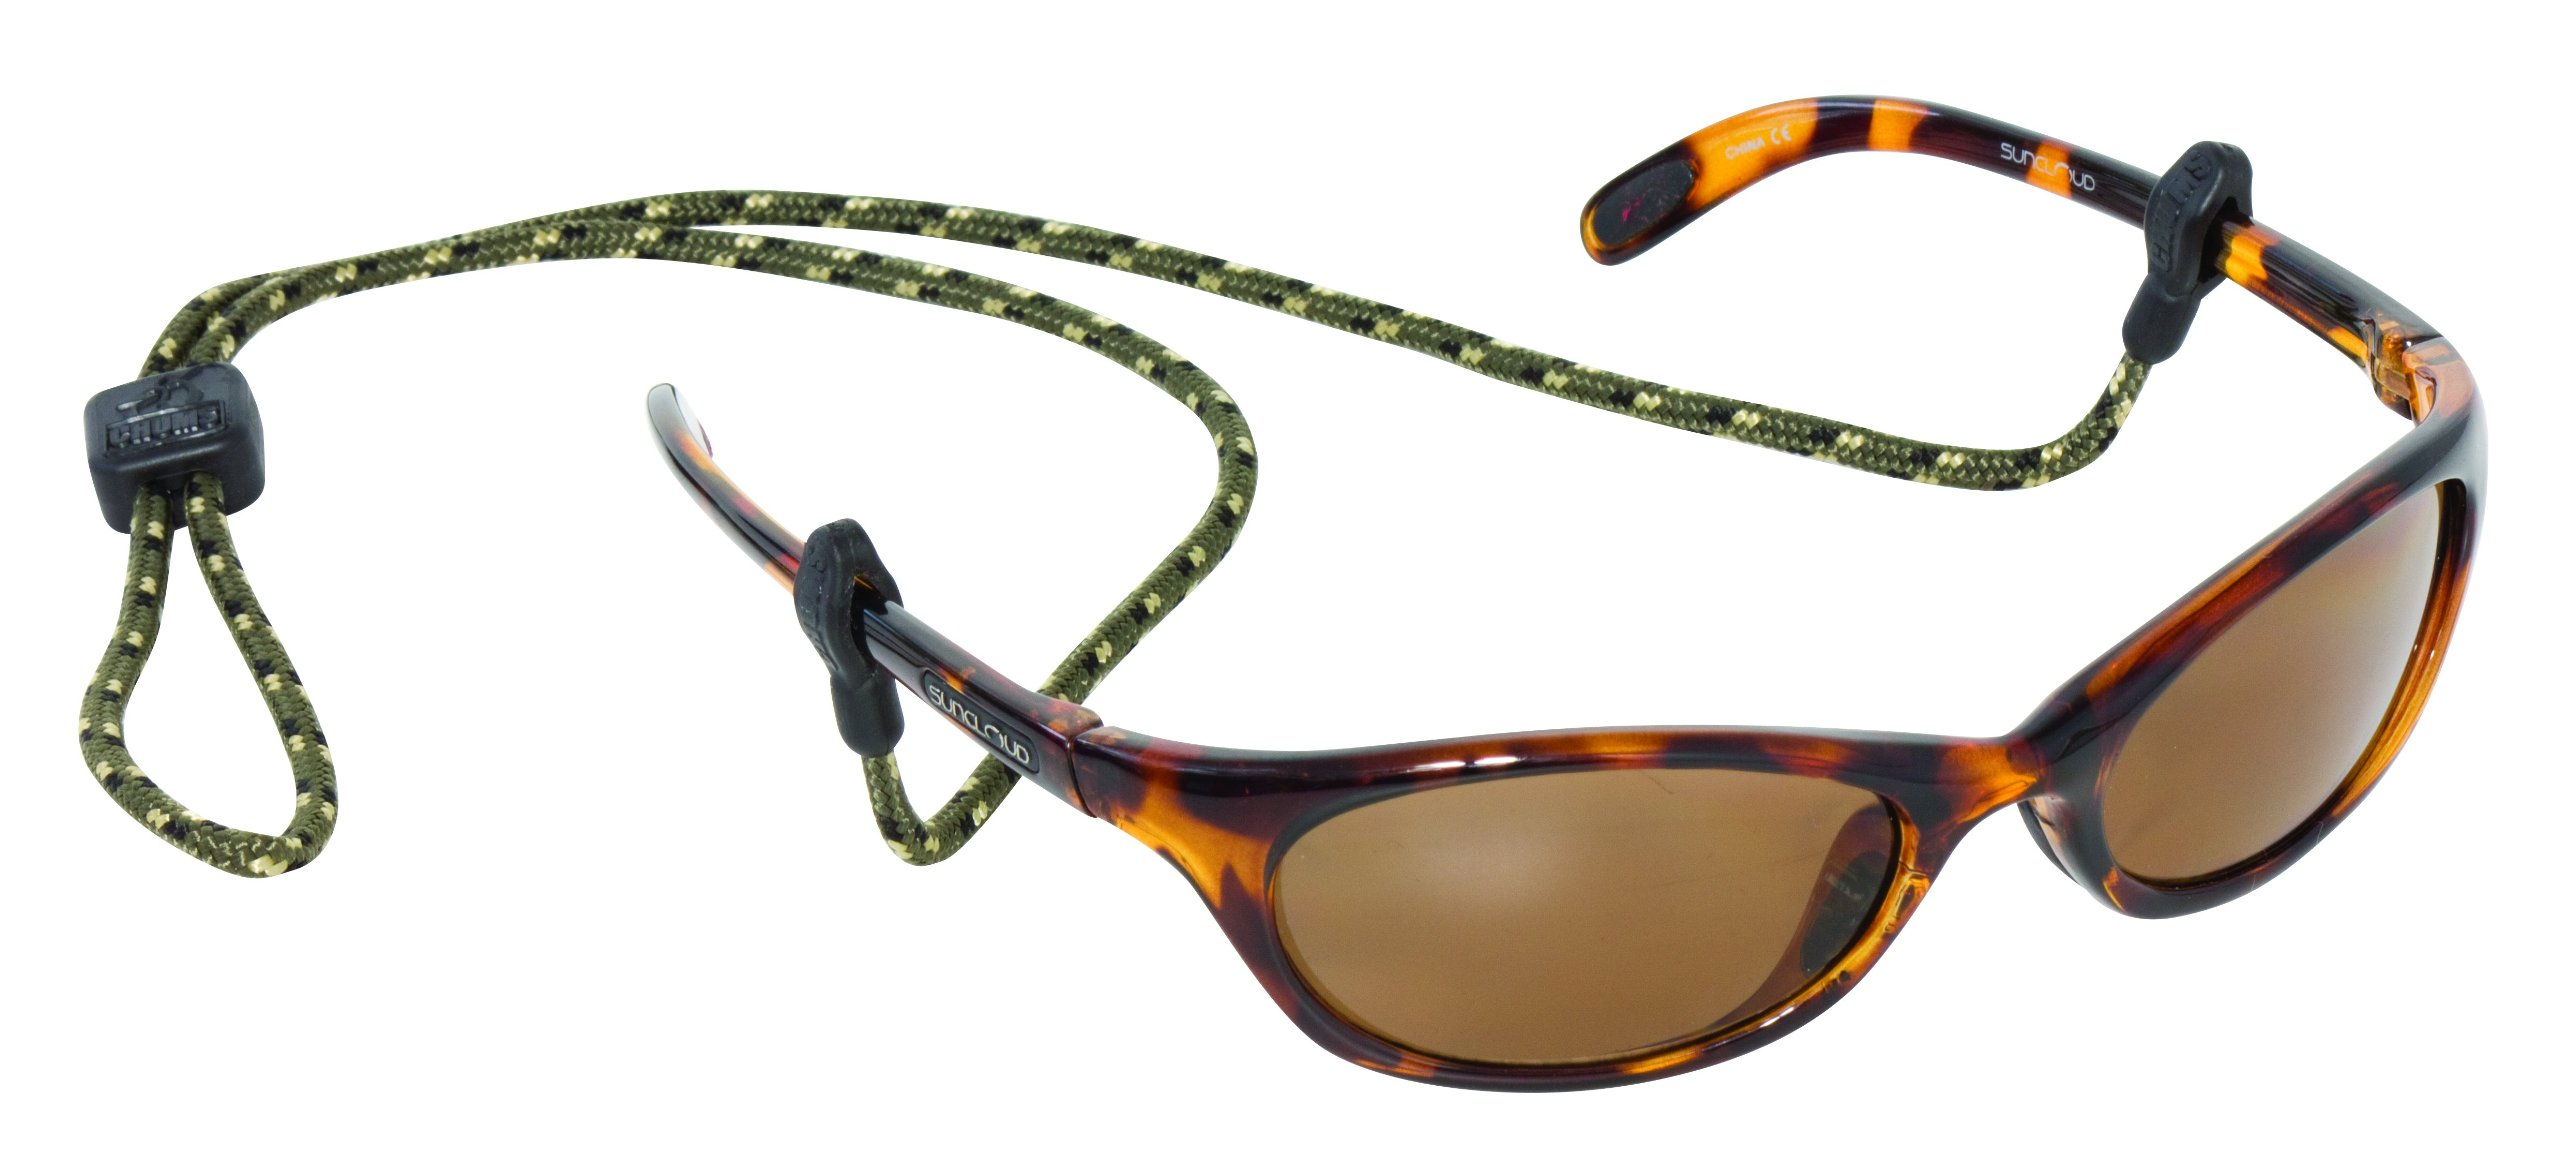 Chums Slip Fit 3mm Rope Eyewear Retainer, Olive/Gold/Black by Chums